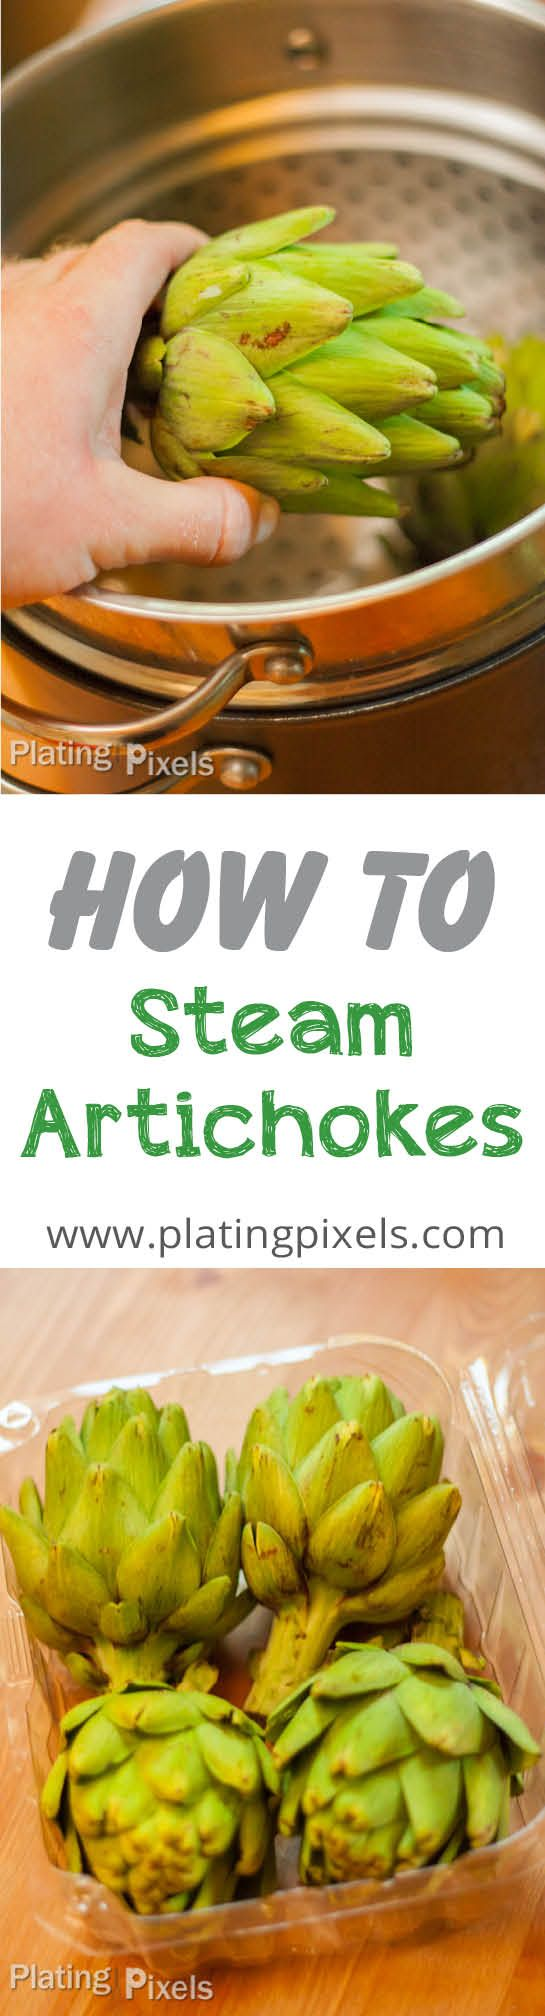 The fail-proof way of how to steam artichokes by Plating Pixels. Steaming is the preferred method for cooking and keeps nutrients in tact. Artichokes make healthy side. - www.platingpixels.com